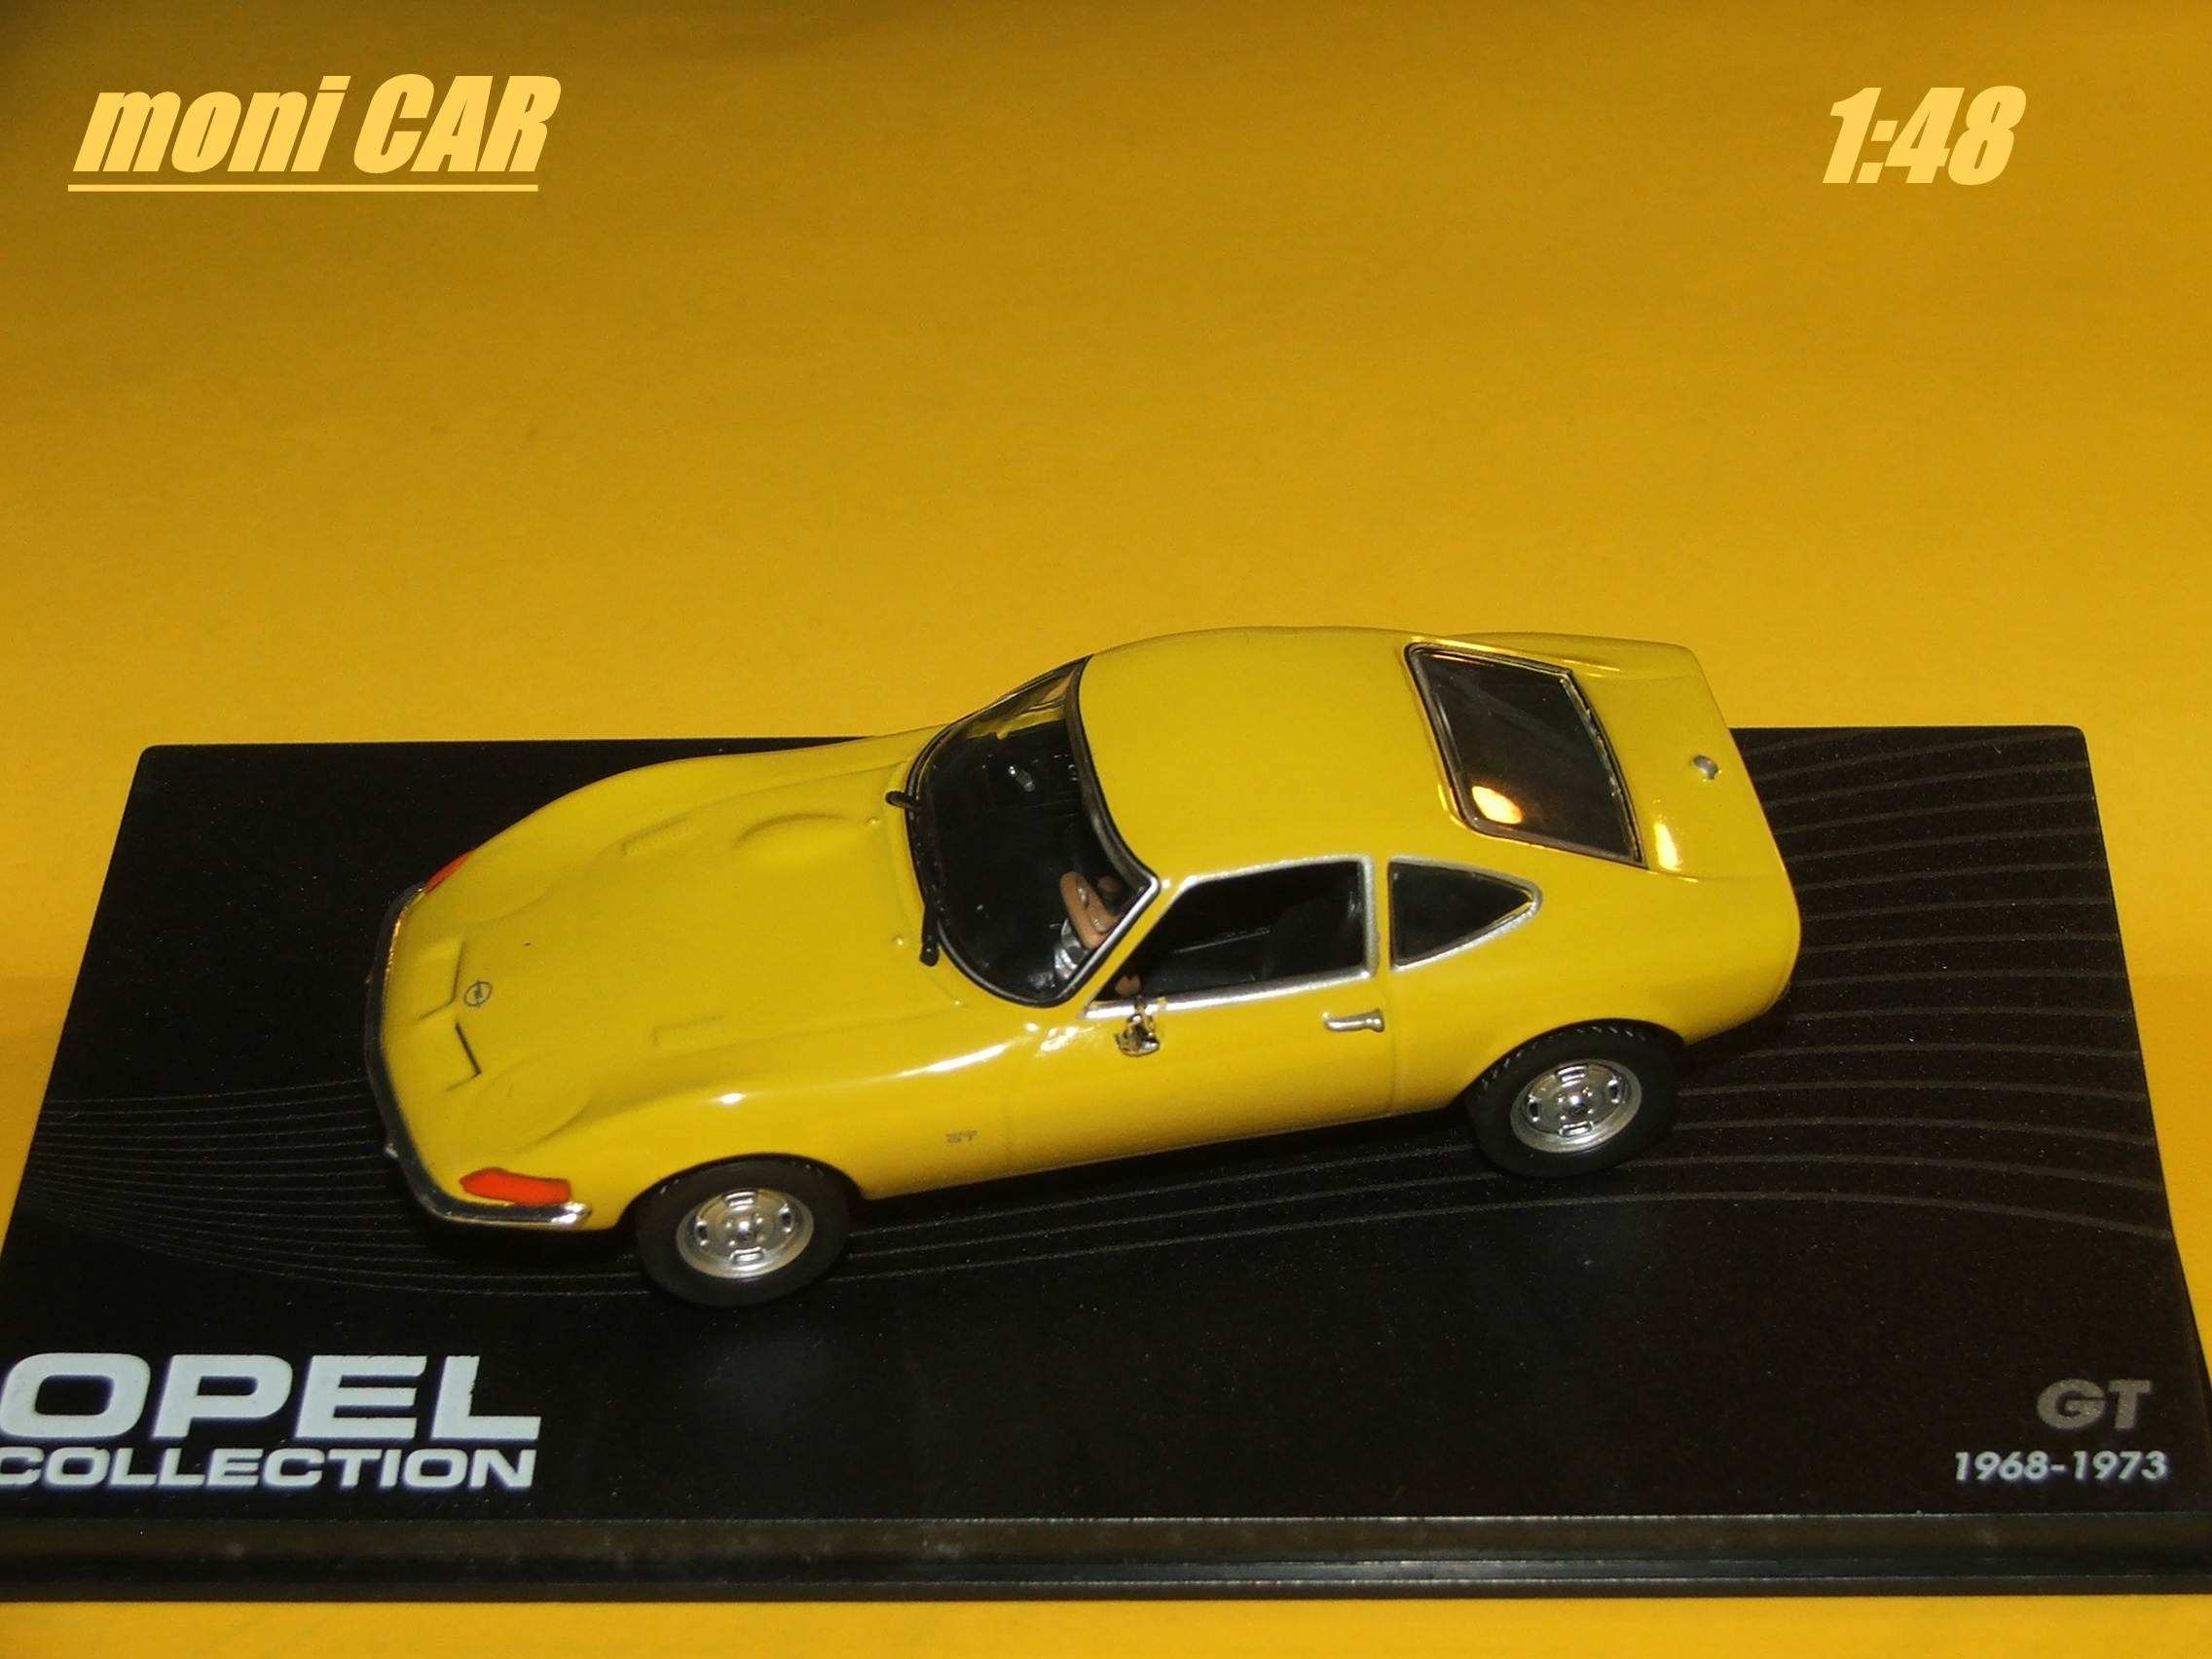 OPEL GT Yellow 1968-1973 (1:43) Opel collection